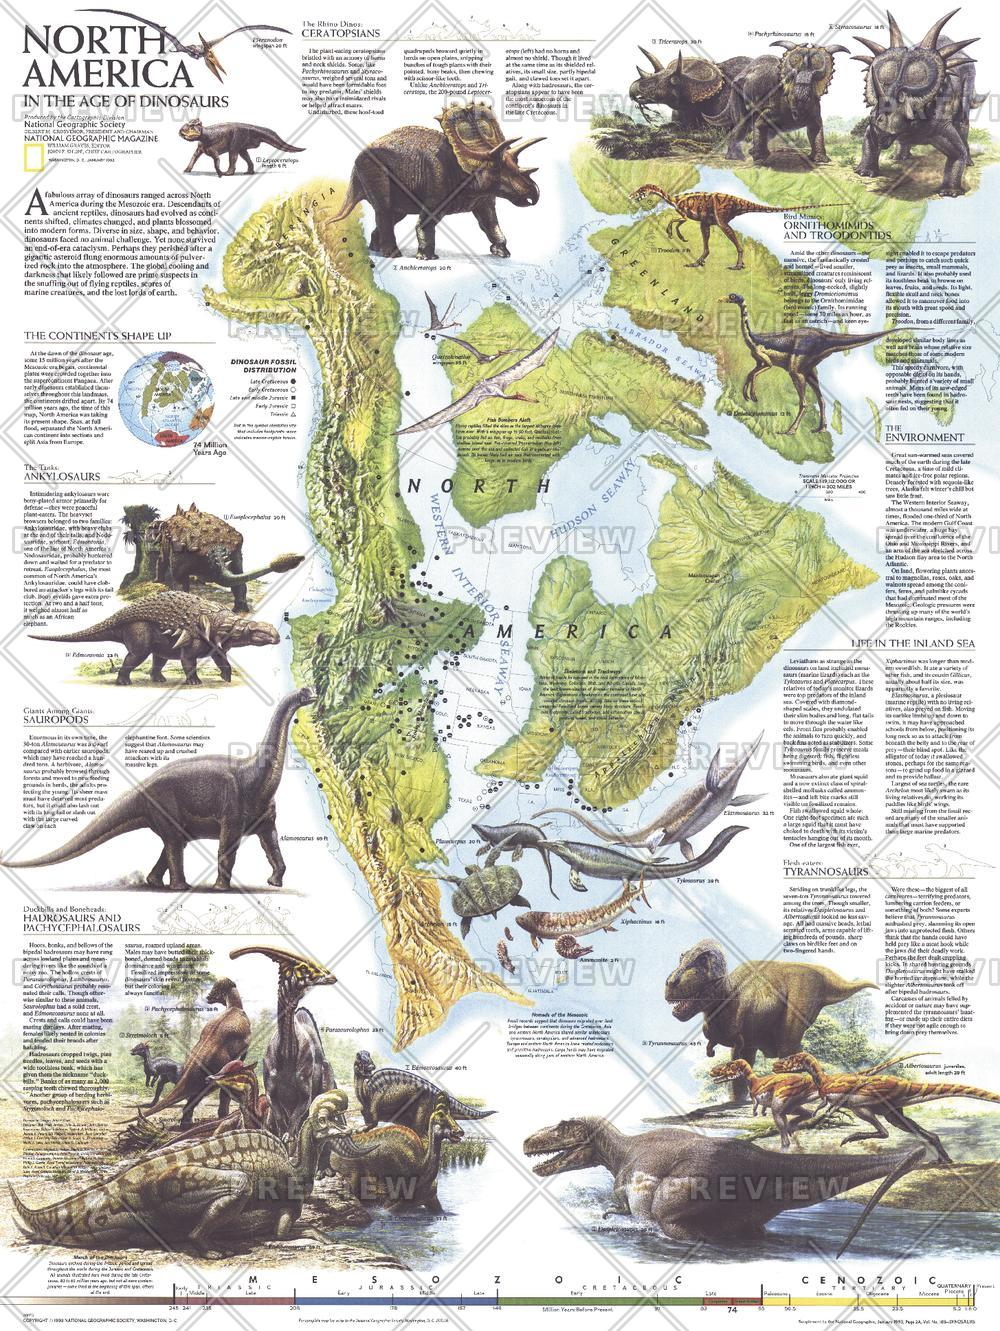 North America in the Age of the Dinosaurs  -  Published 1993